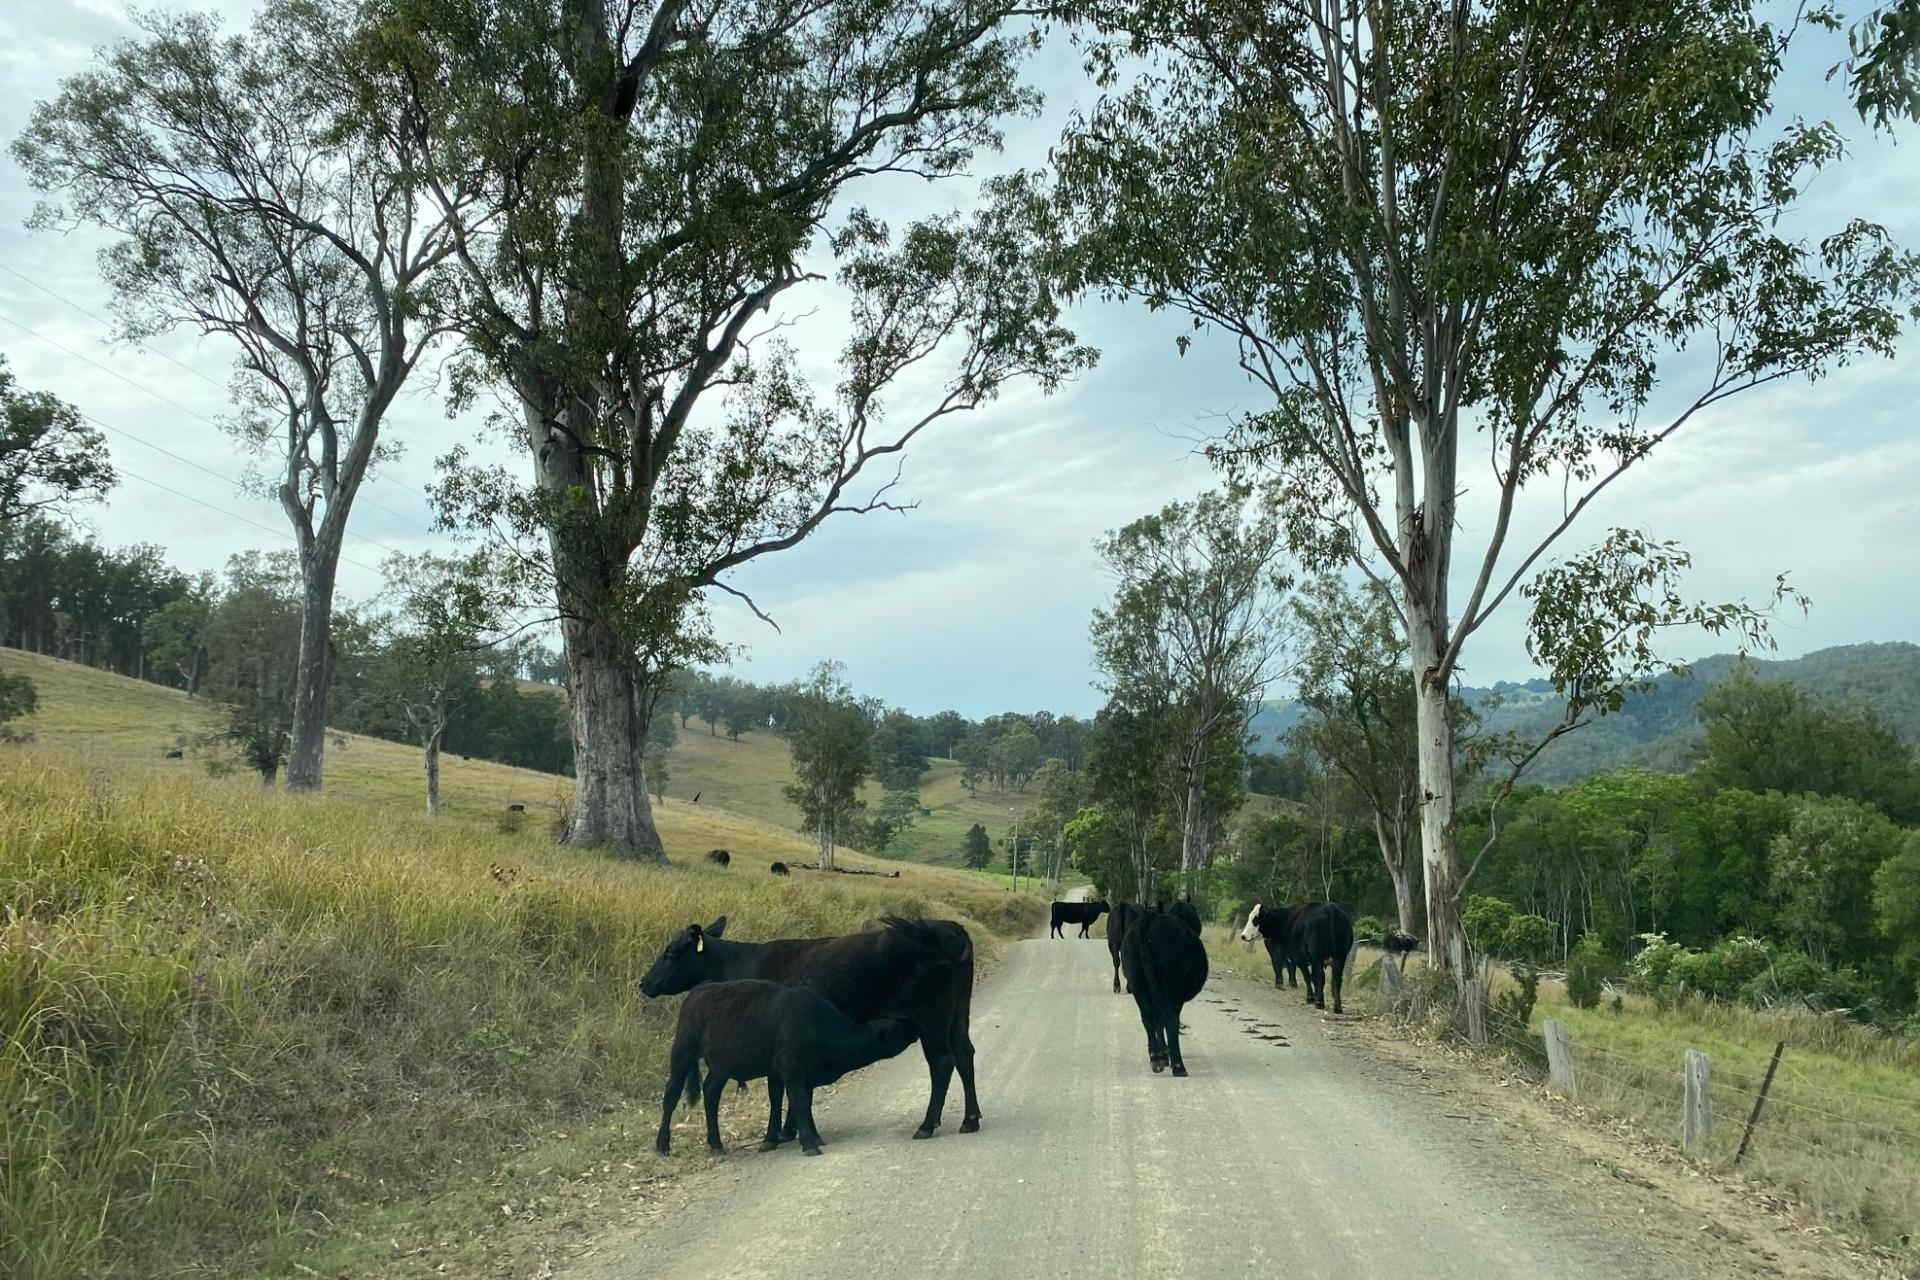 GROW Kids Farm Tour - Cows on the road.